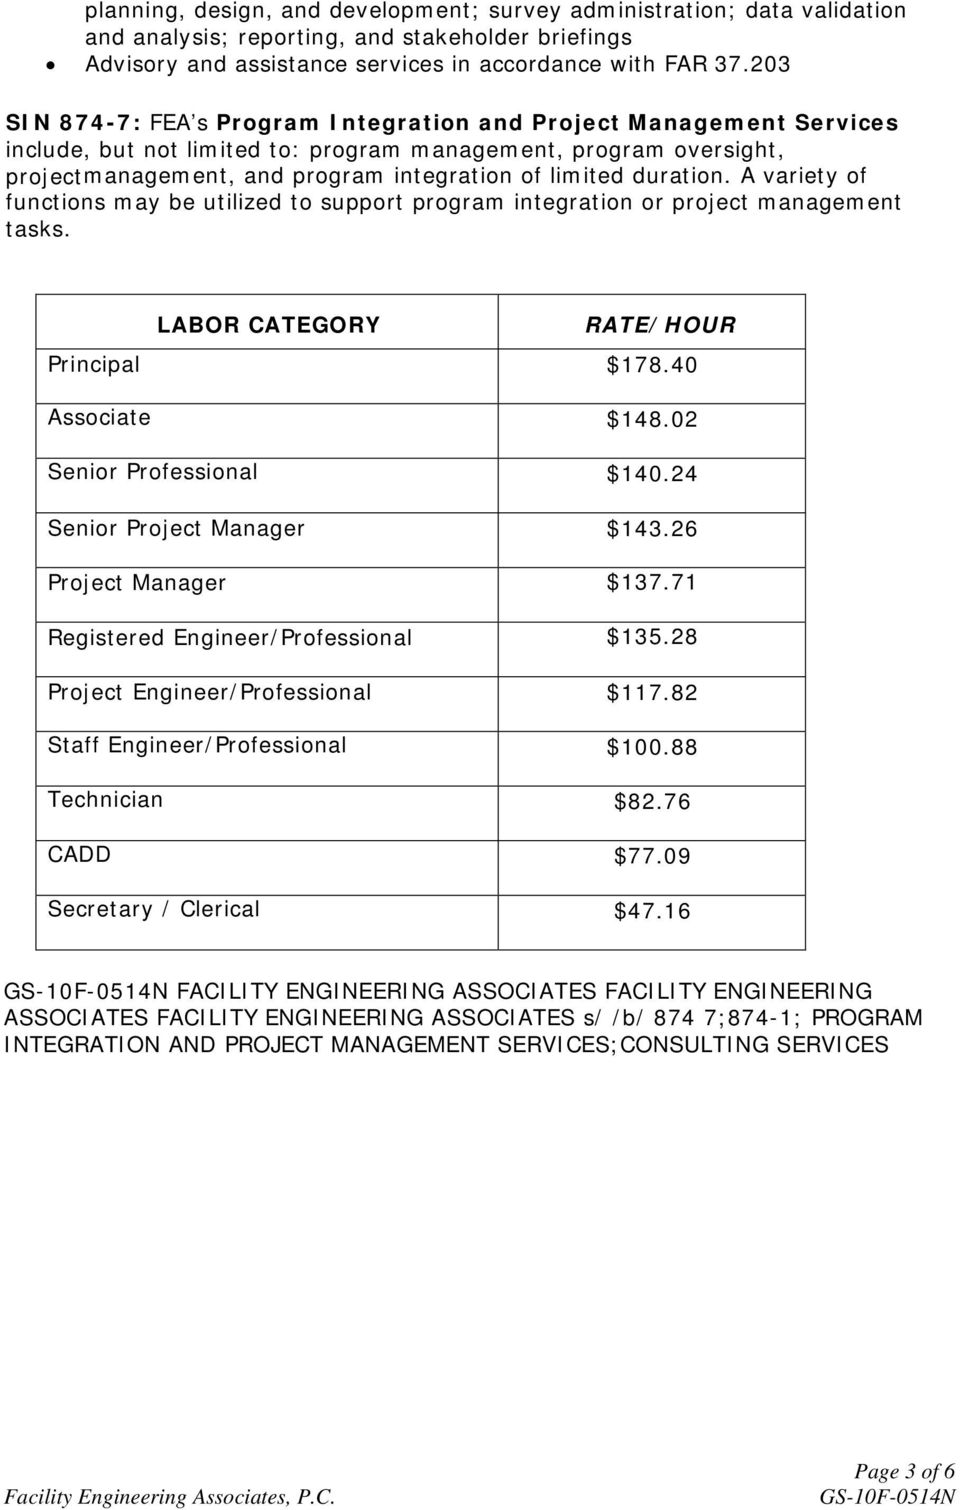 duration. A variety of functions may be utilized to support program integration or project management tasks. LABOR CATEGORY RATE/HOUR Principal $178.40 Associate $148.02 Senior Professional $140.